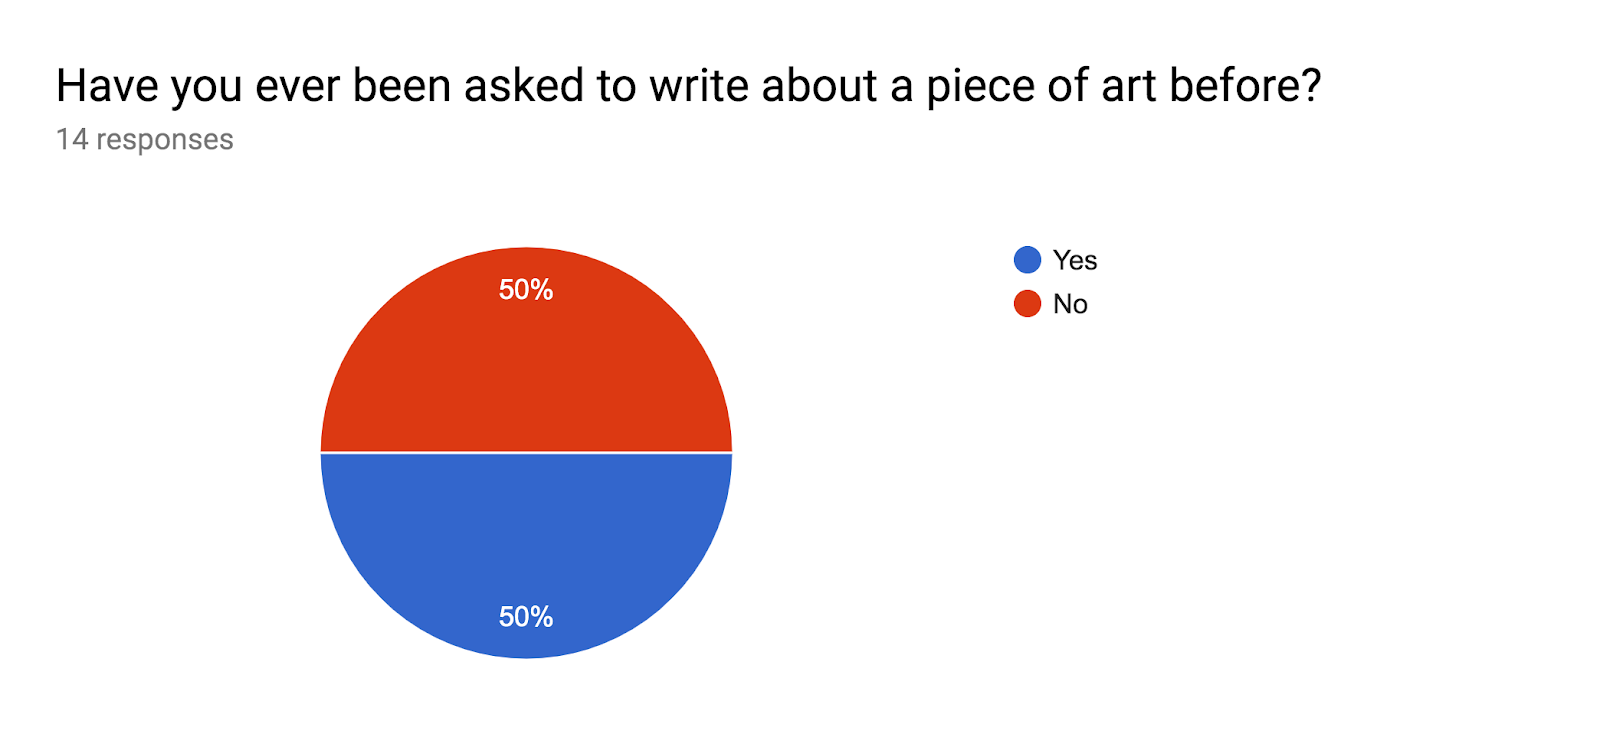 Forms response chart. Question title: Have you ever been asked to write about a piece of art before?. Number of responses: 14 responses.